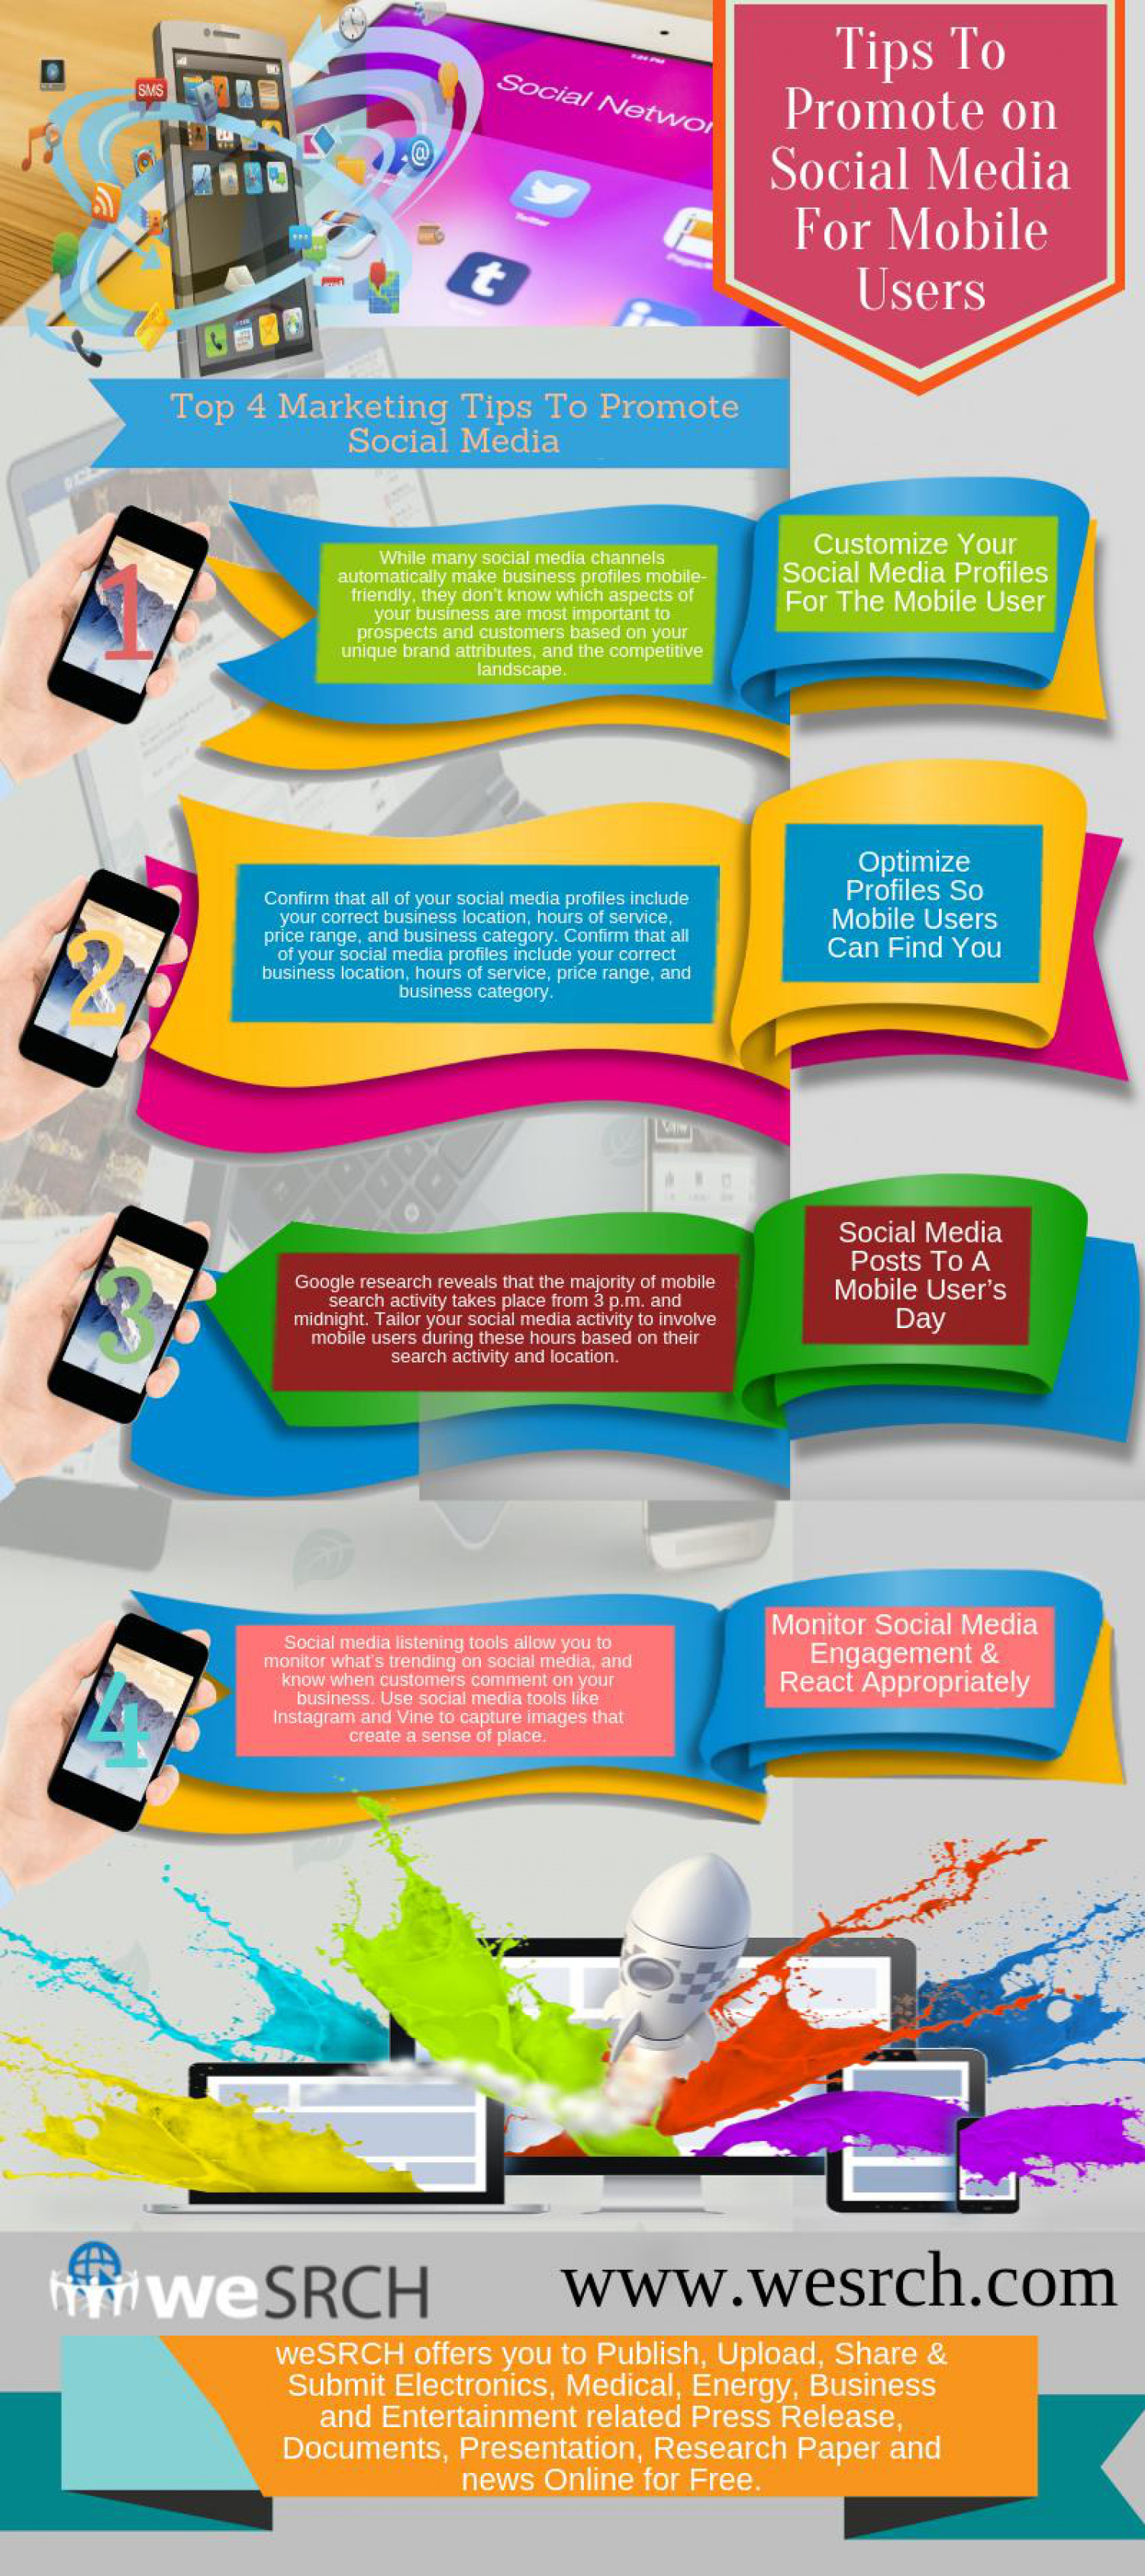 Tips to promote on social media for mobile users Infographic